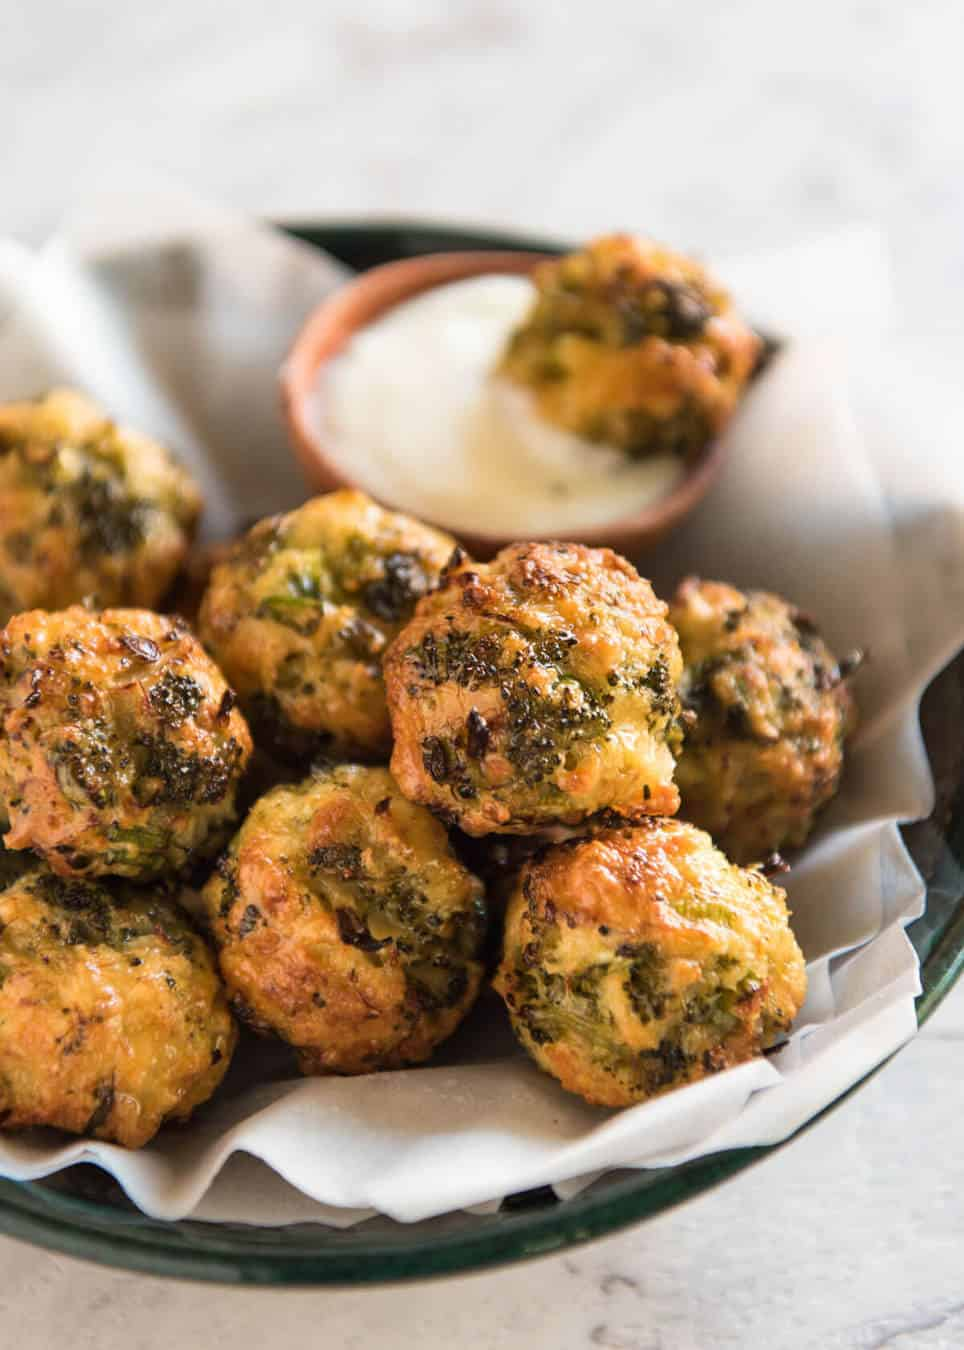 Baked Broccoli Cheese Balls | RecipeTin Eats